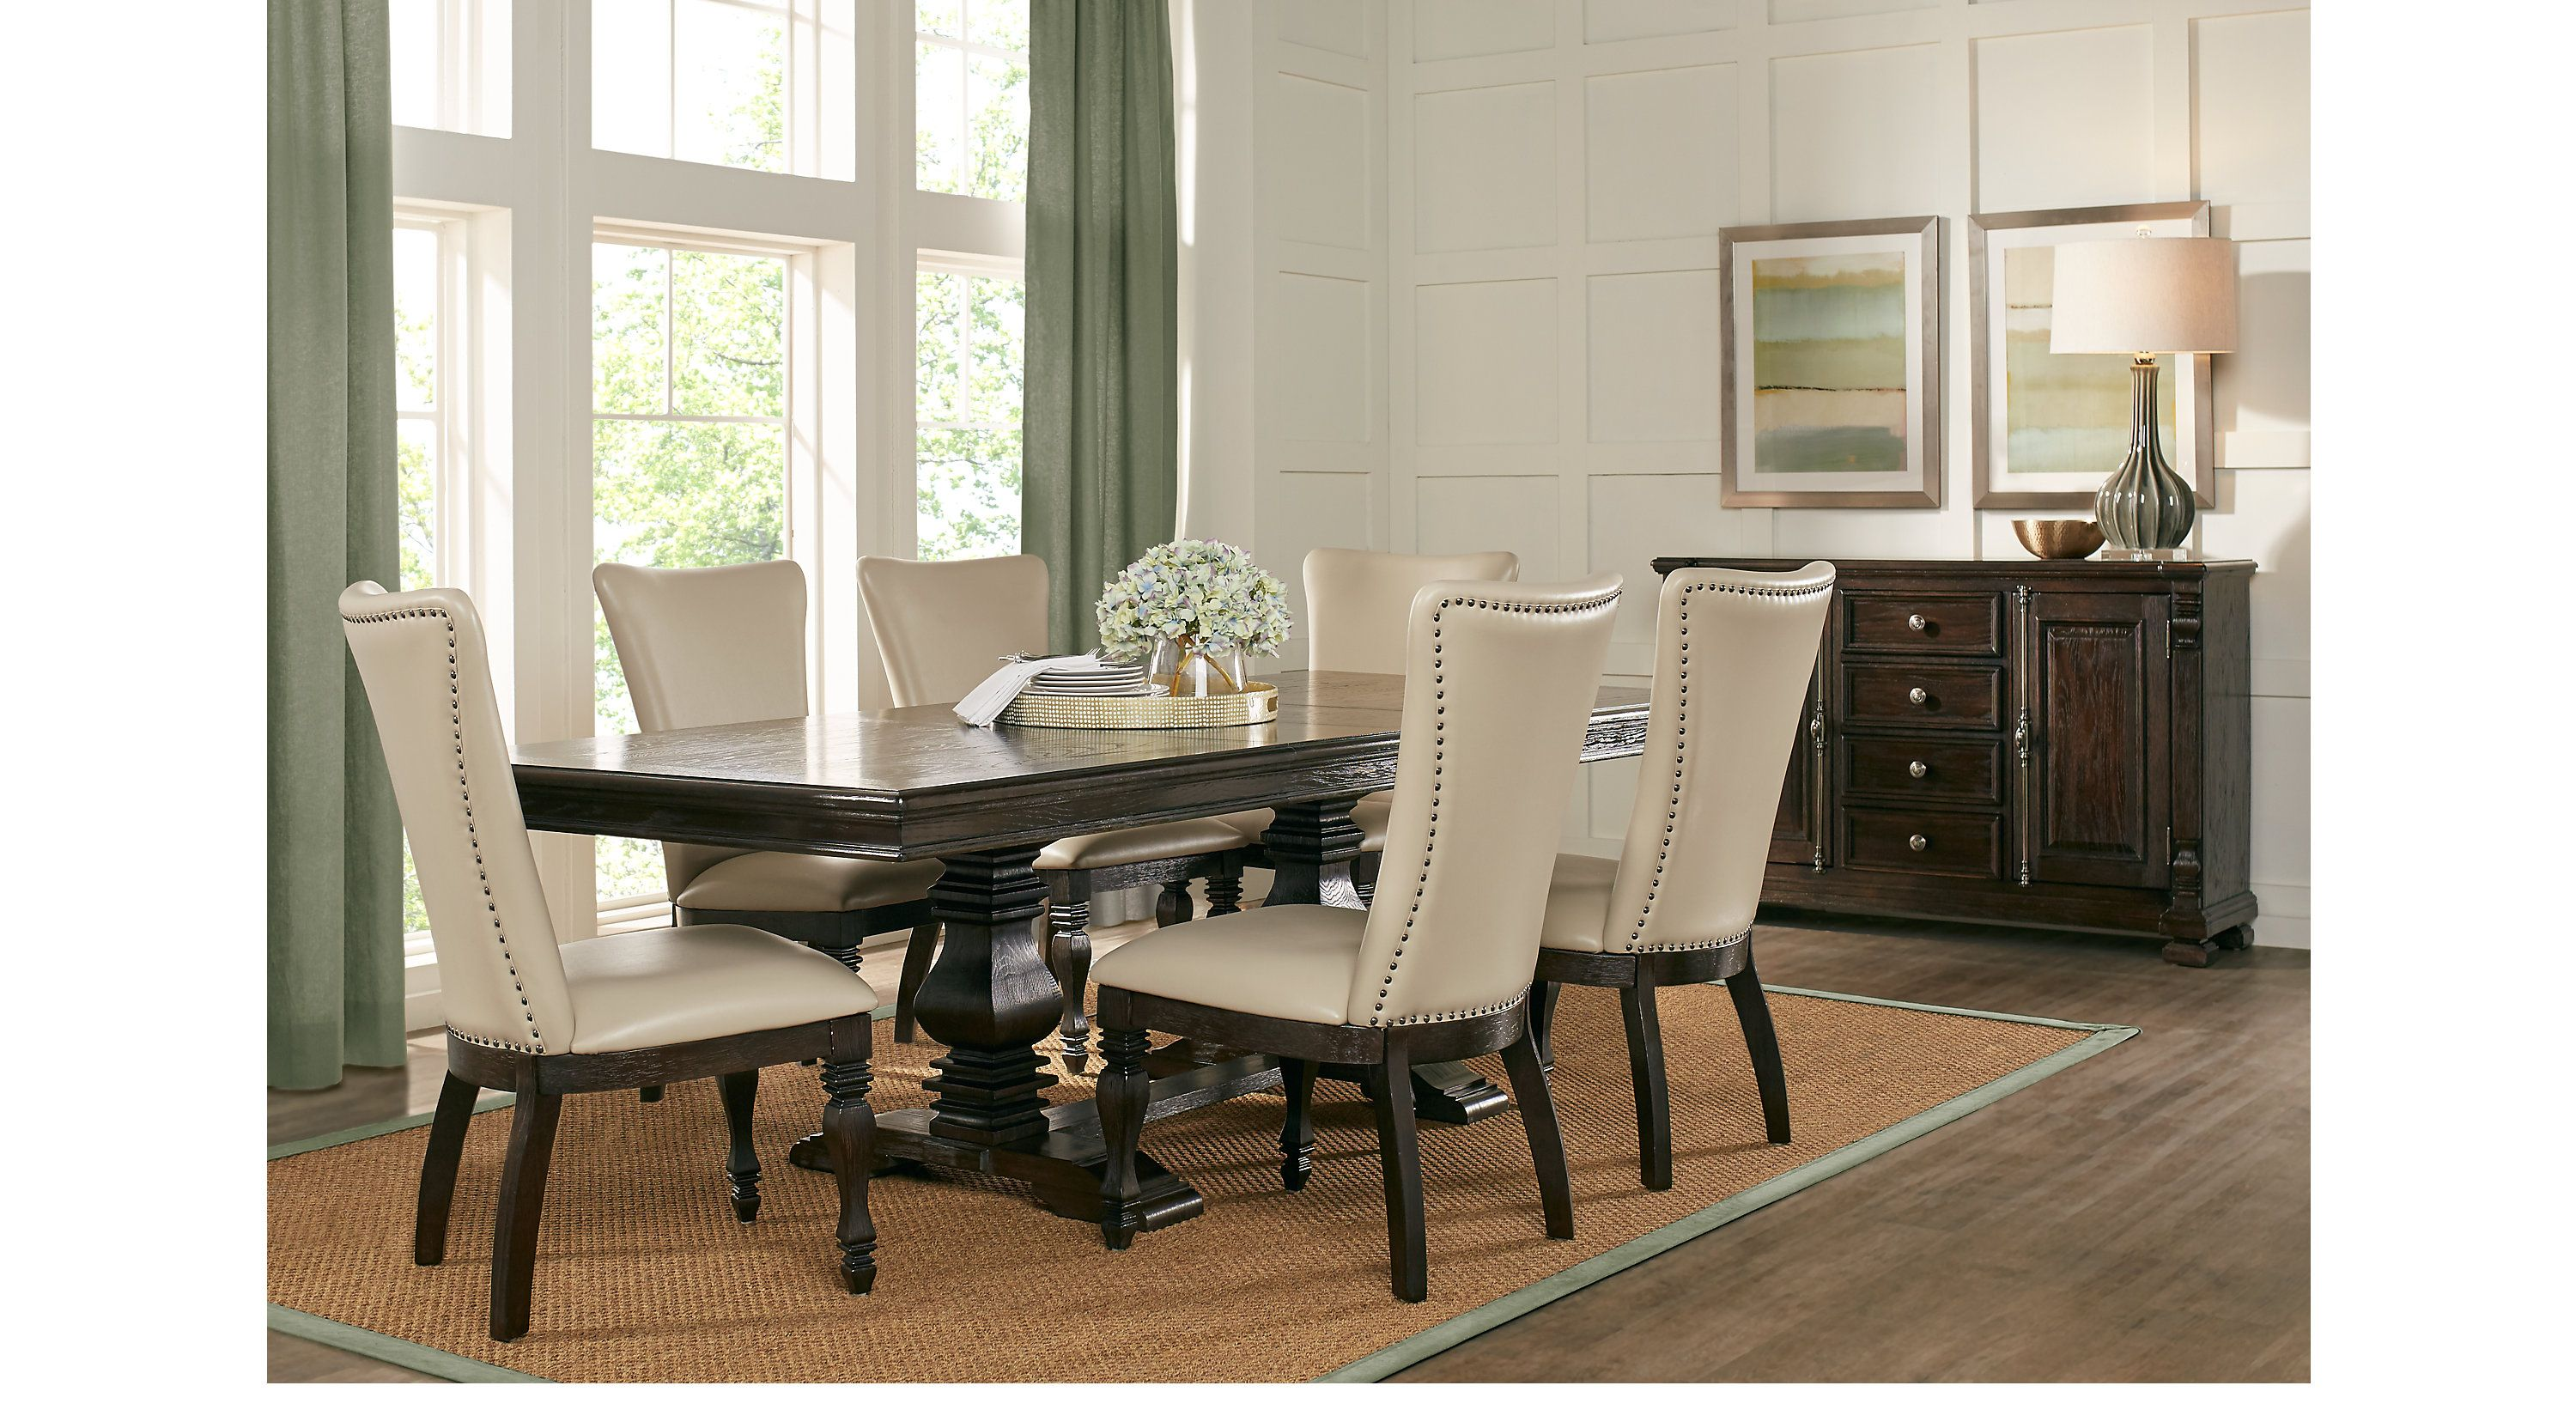 Dining Room Sets Rooms To Go San Luis Oak 7 Pc Rectangle Dining Room 4241604p Rectangle Dining Table Dining Room Sets Dining Table Dimensions